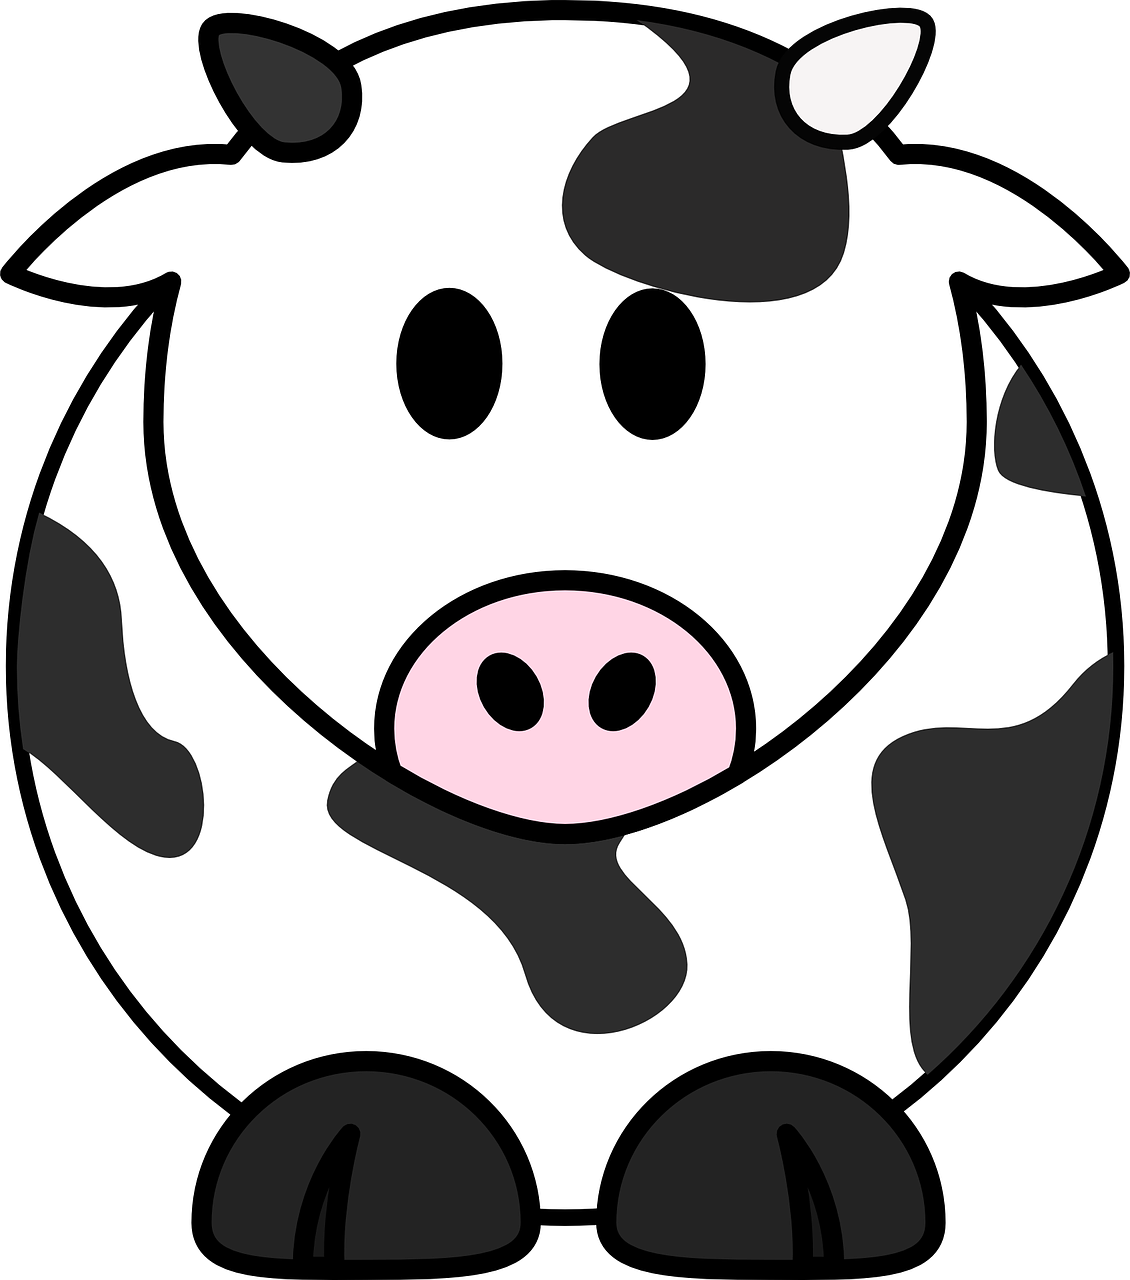 medium resolution of milk cow cow cattle black white moo cartoon cute